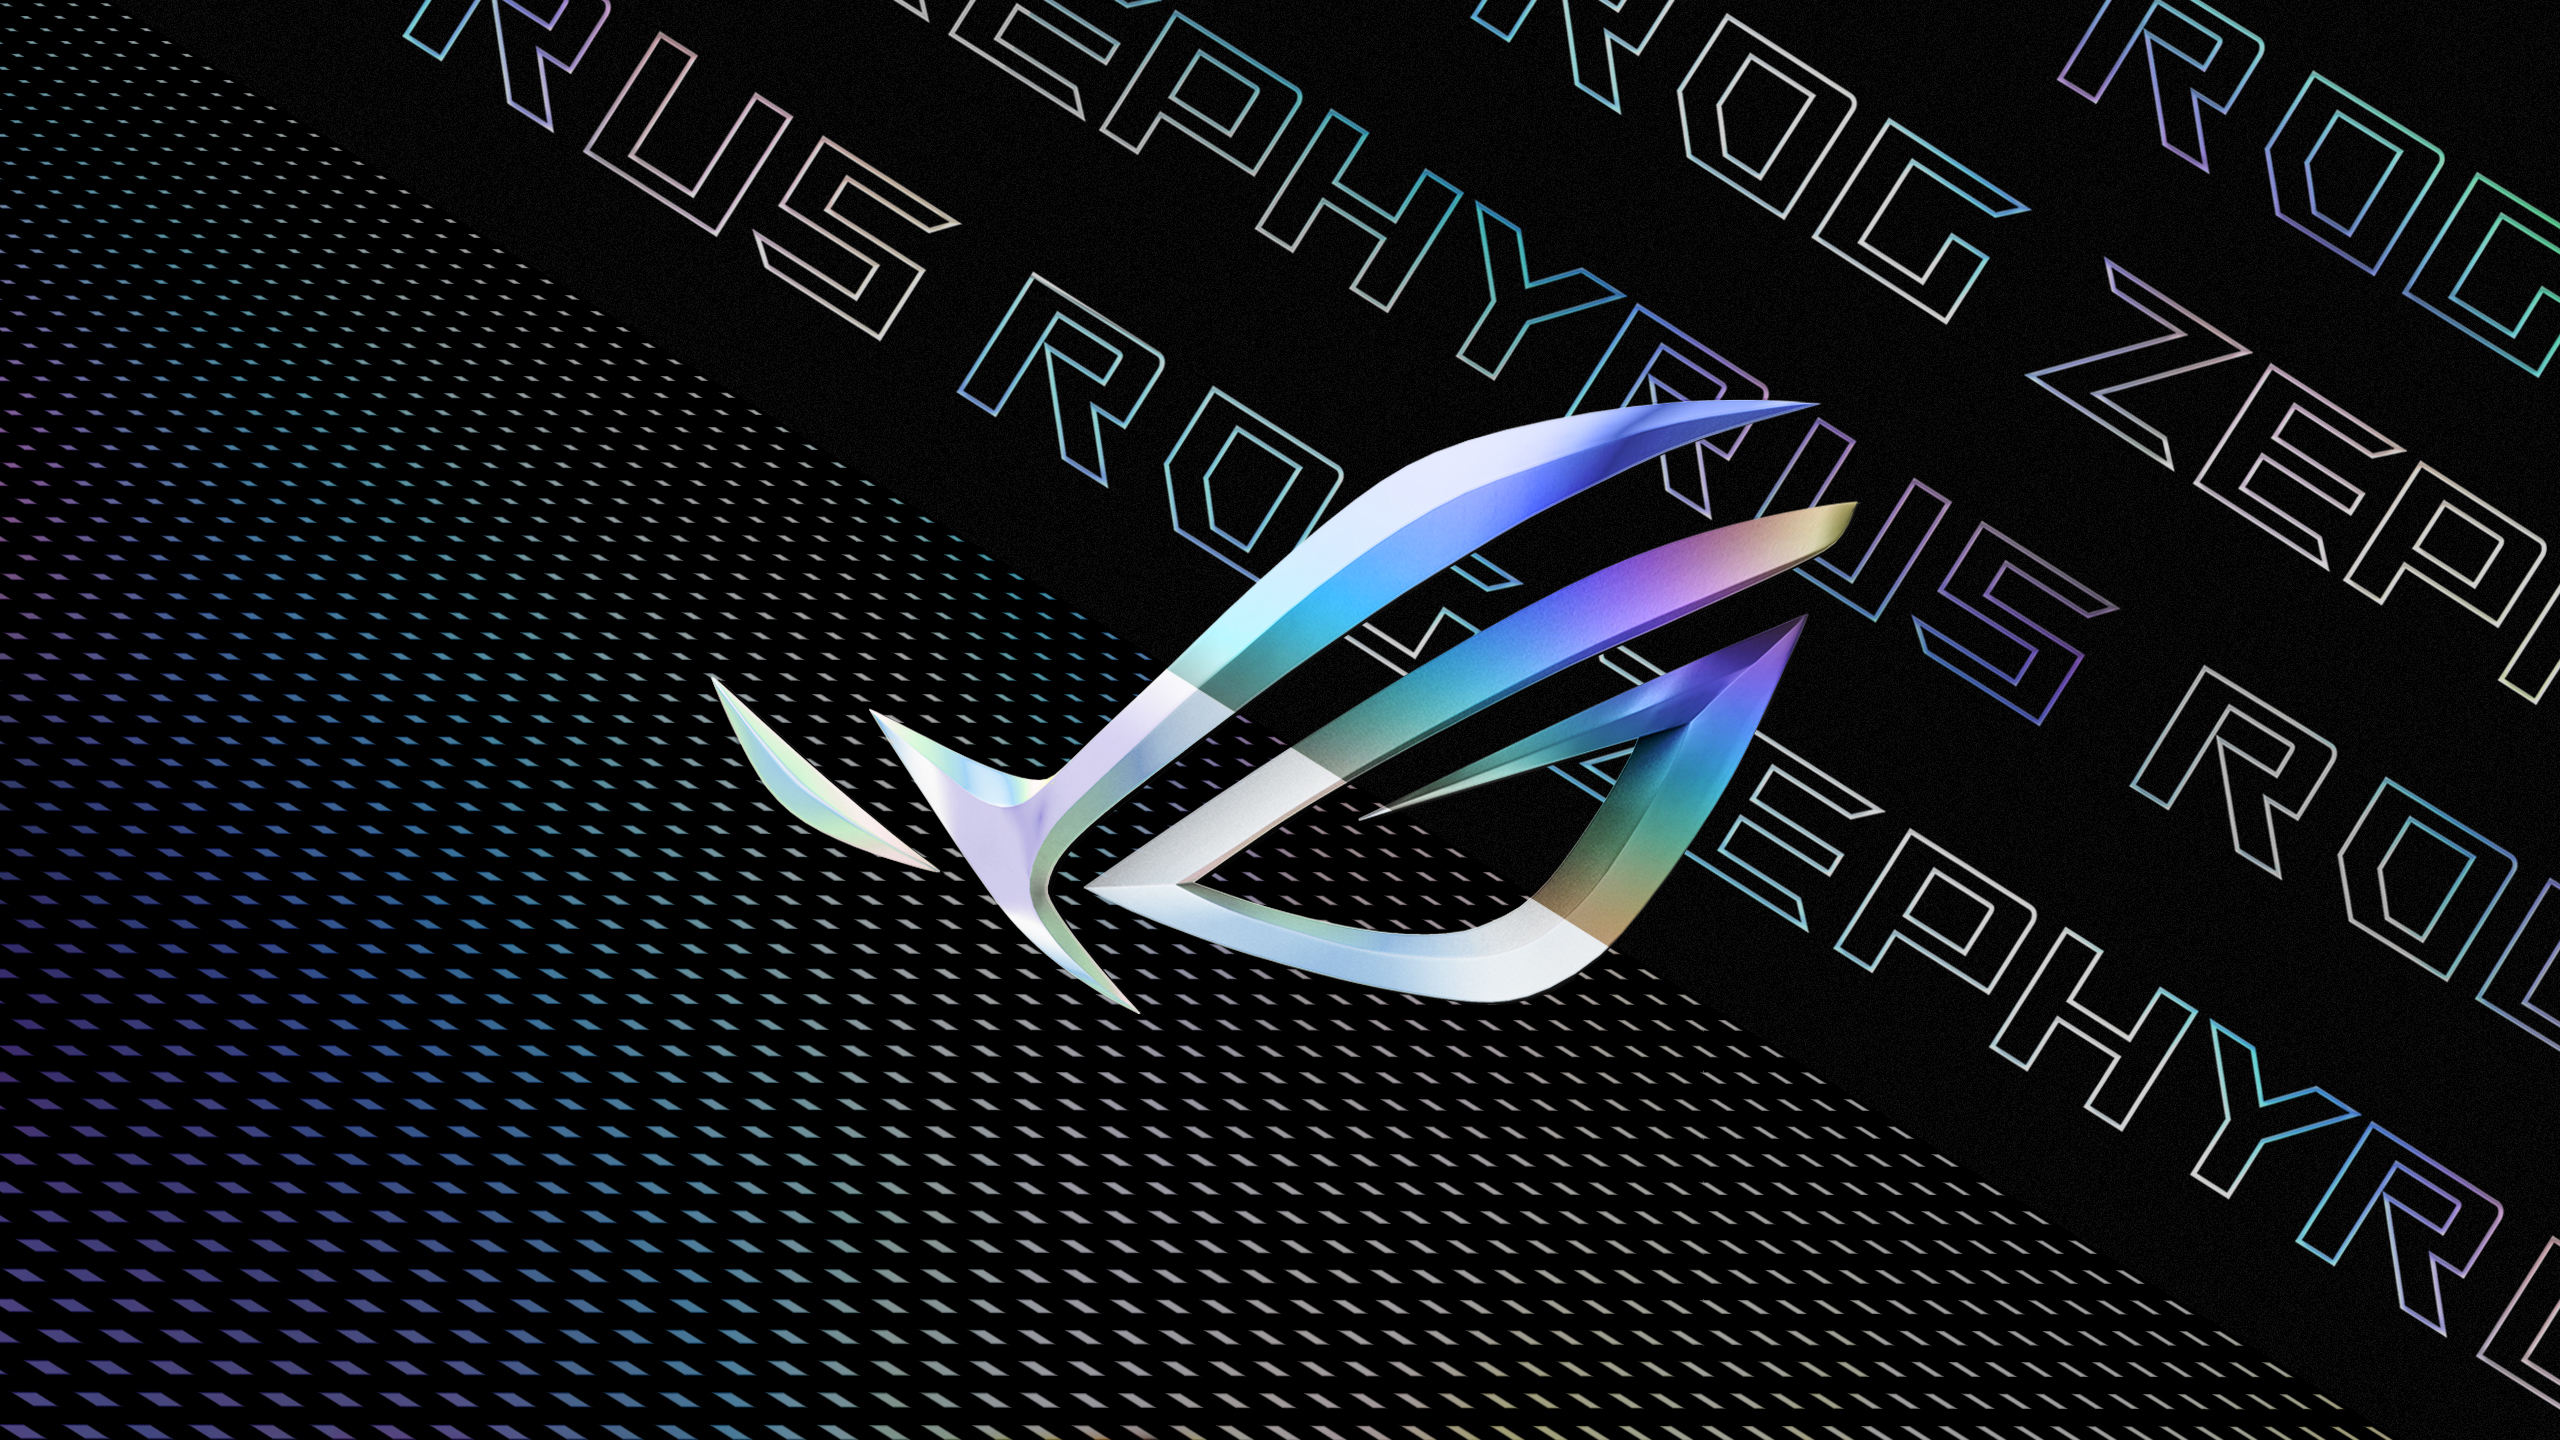 ROG ZEPHYRUS G15 wallpaper